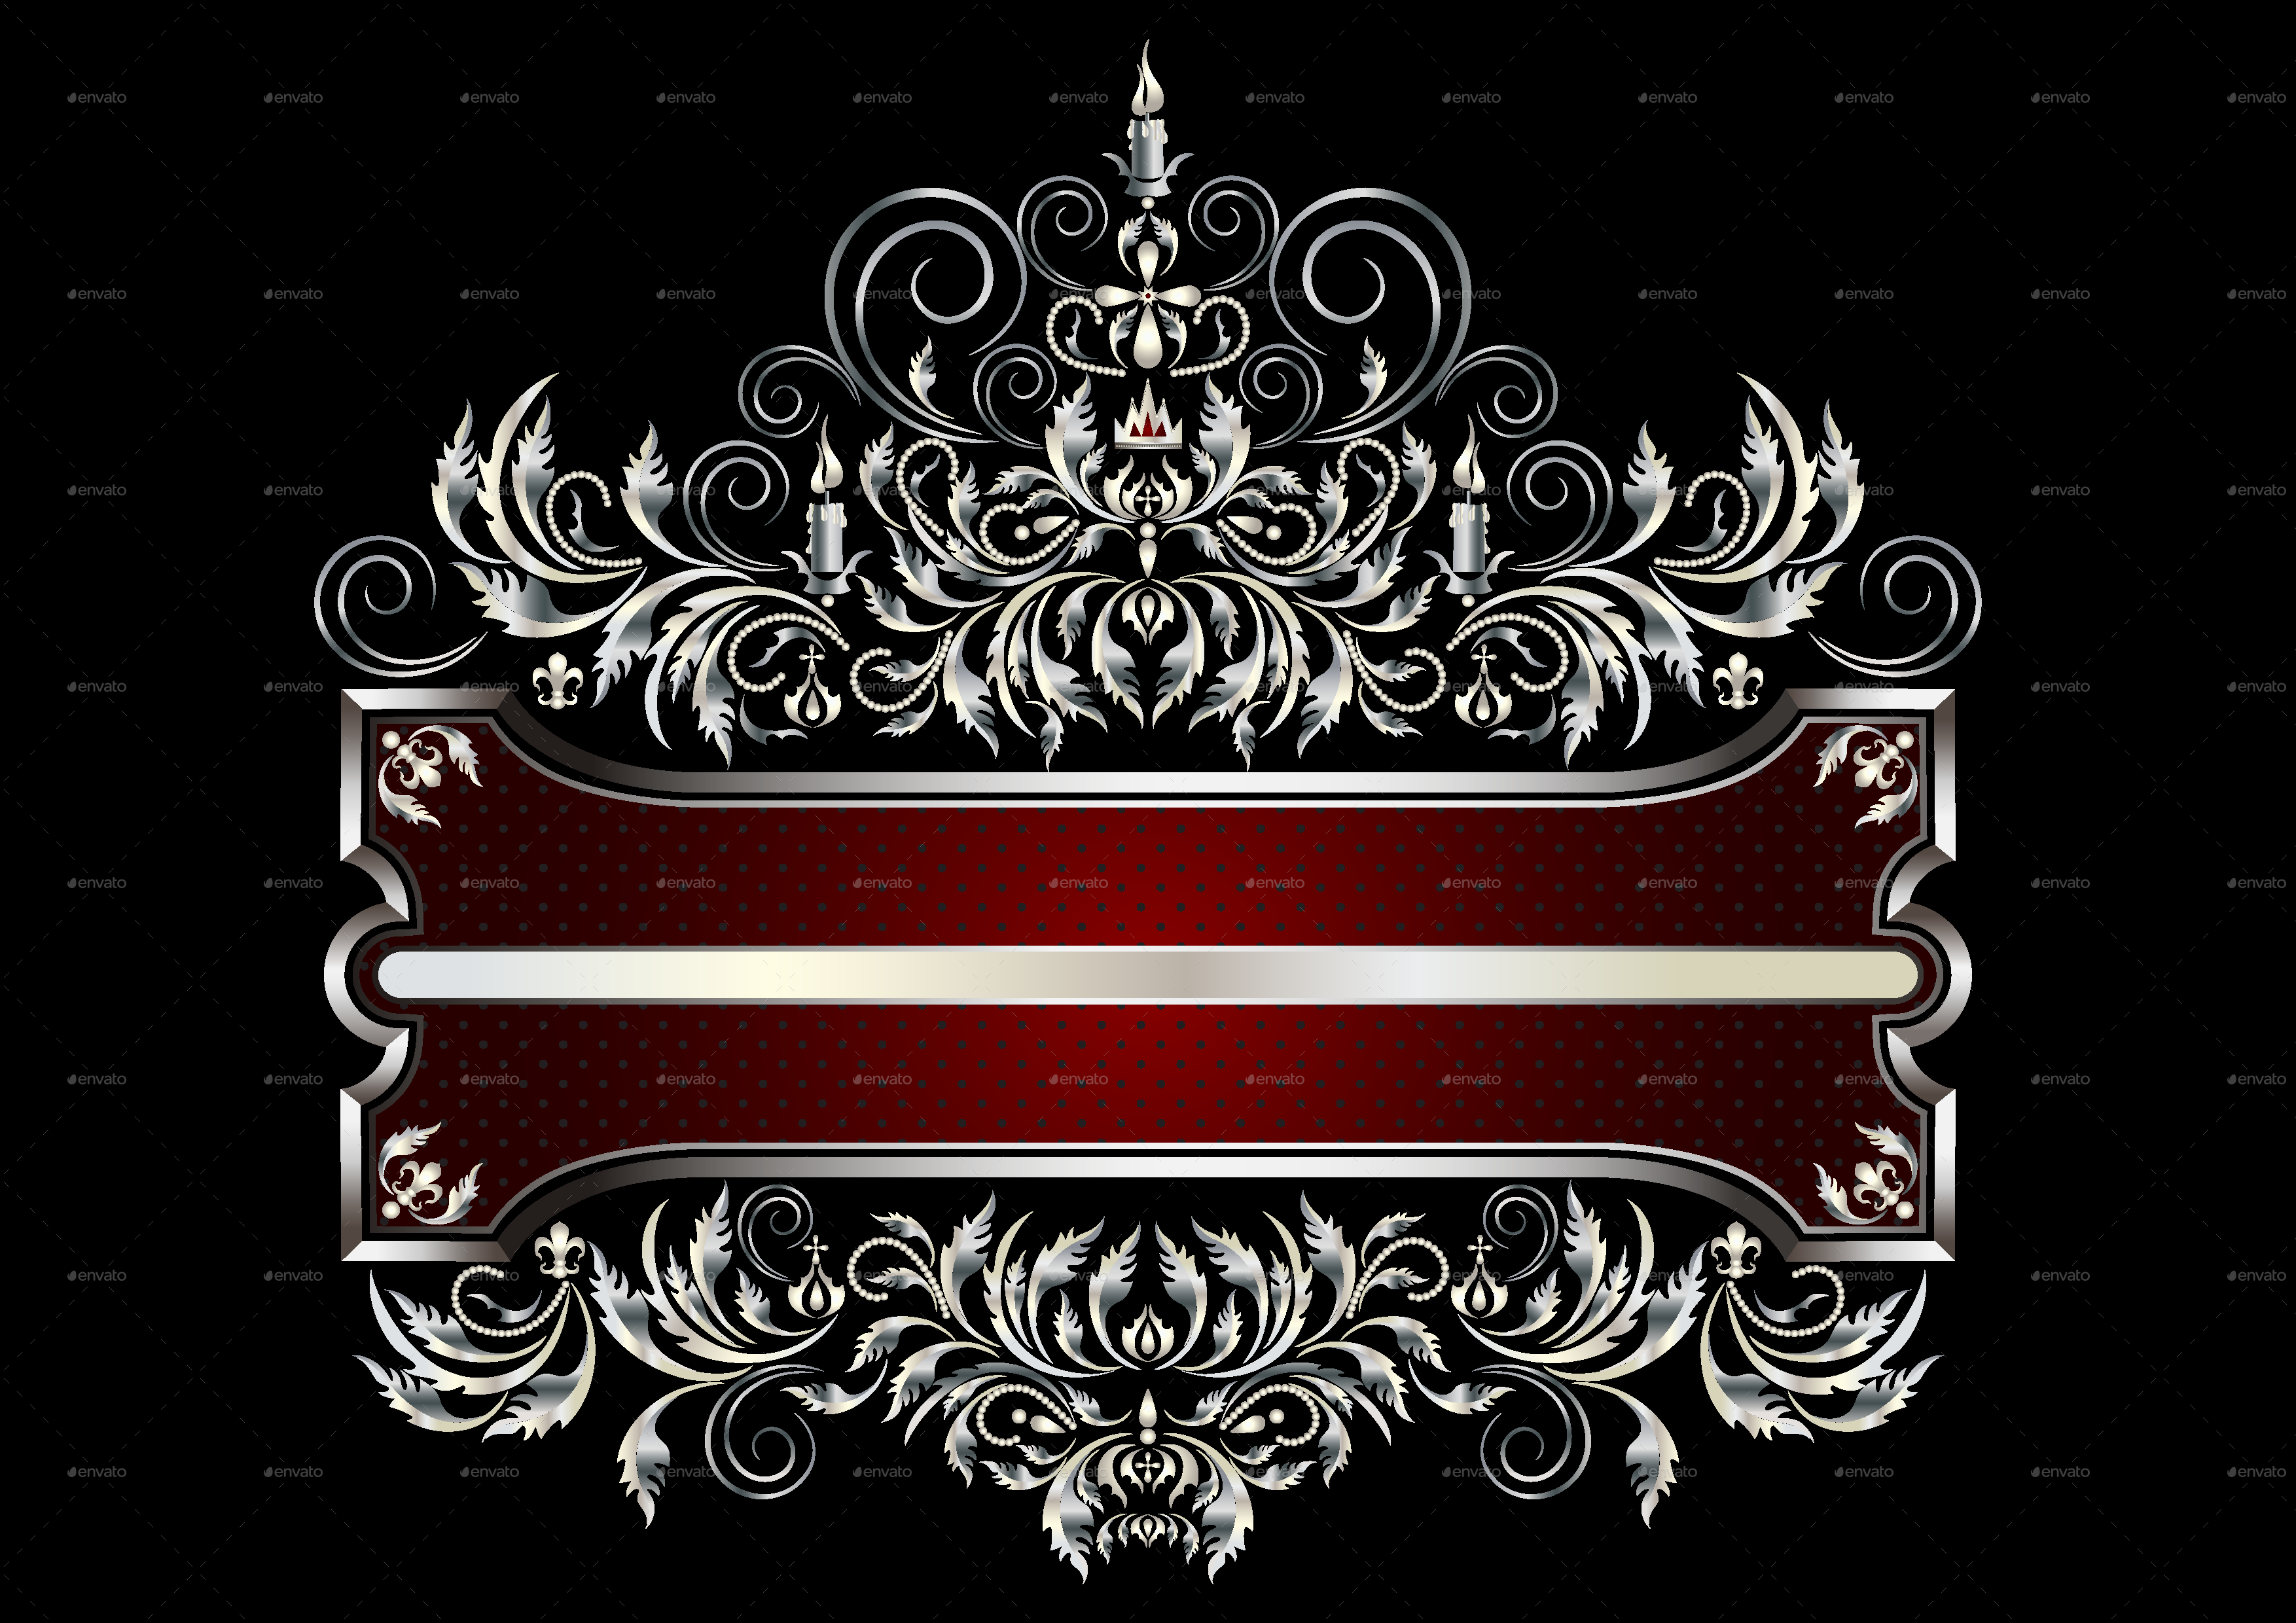 Silver frame with victorian style decor by tatyanamh graphicriver for Envato graphicriver